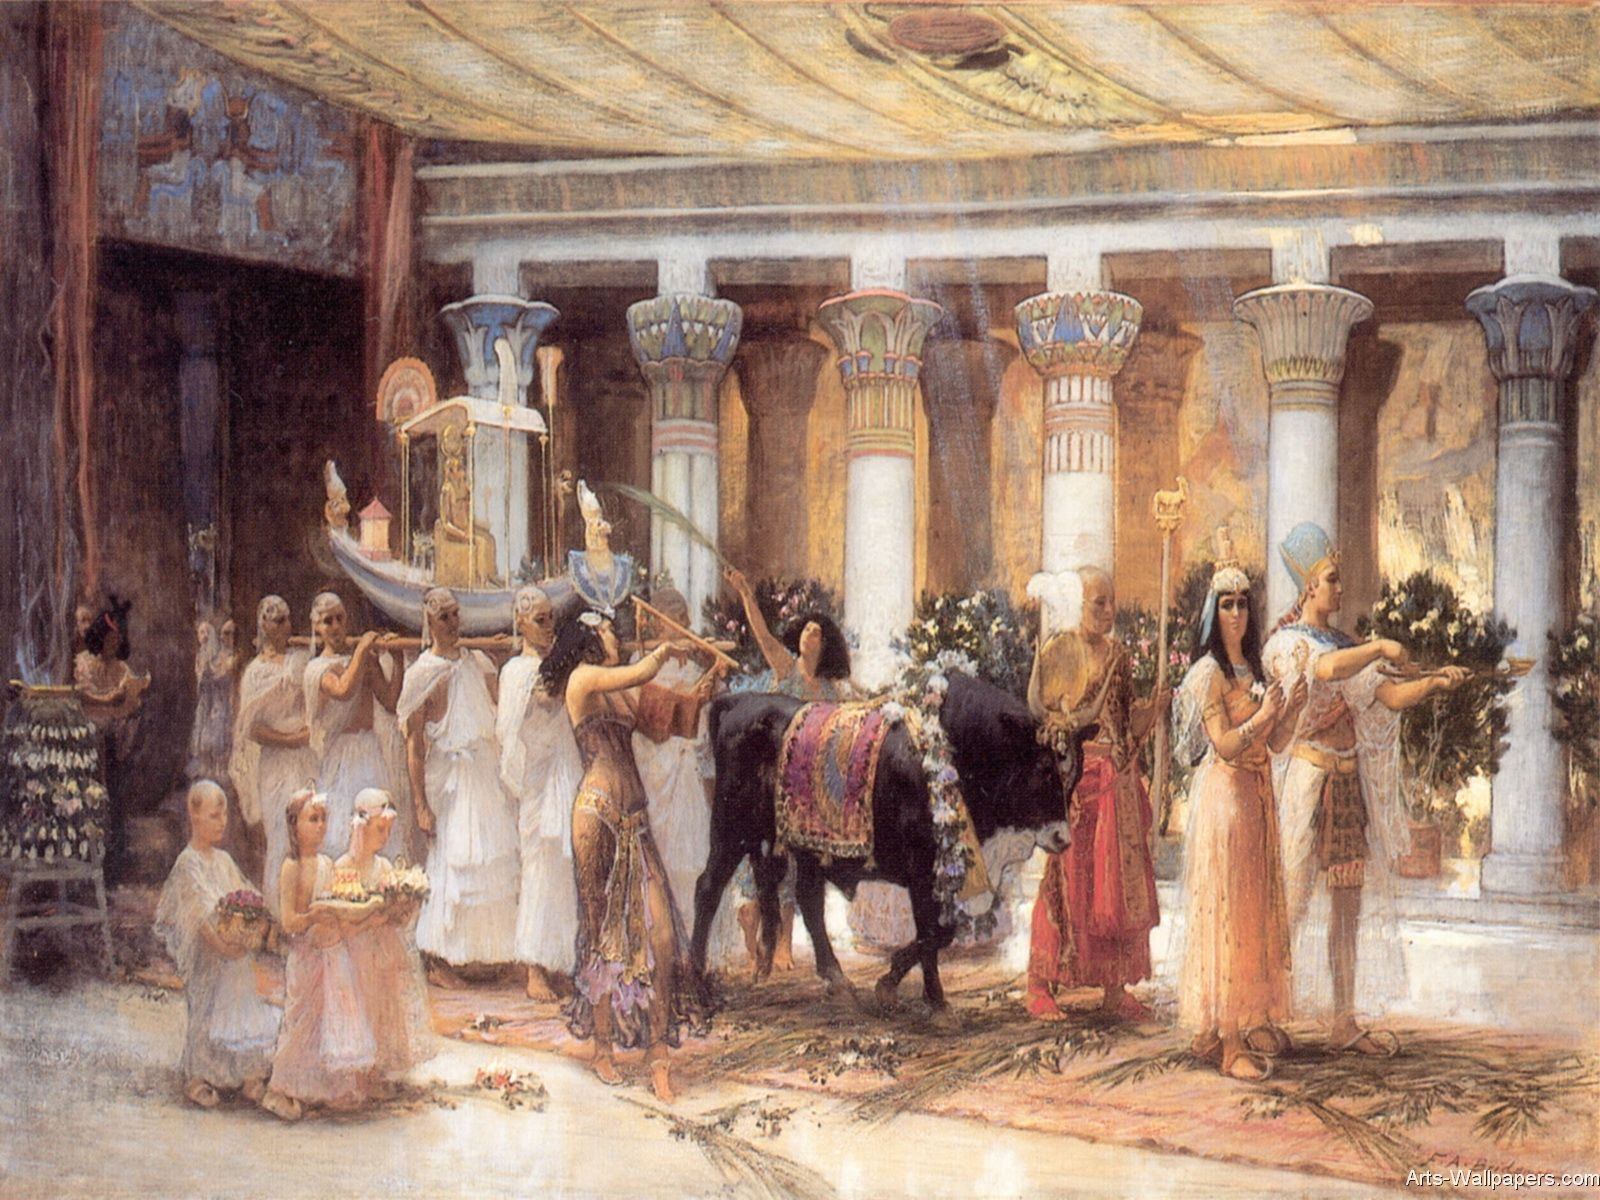 Ancient Egypt Classical Painting - HD Wallpaper